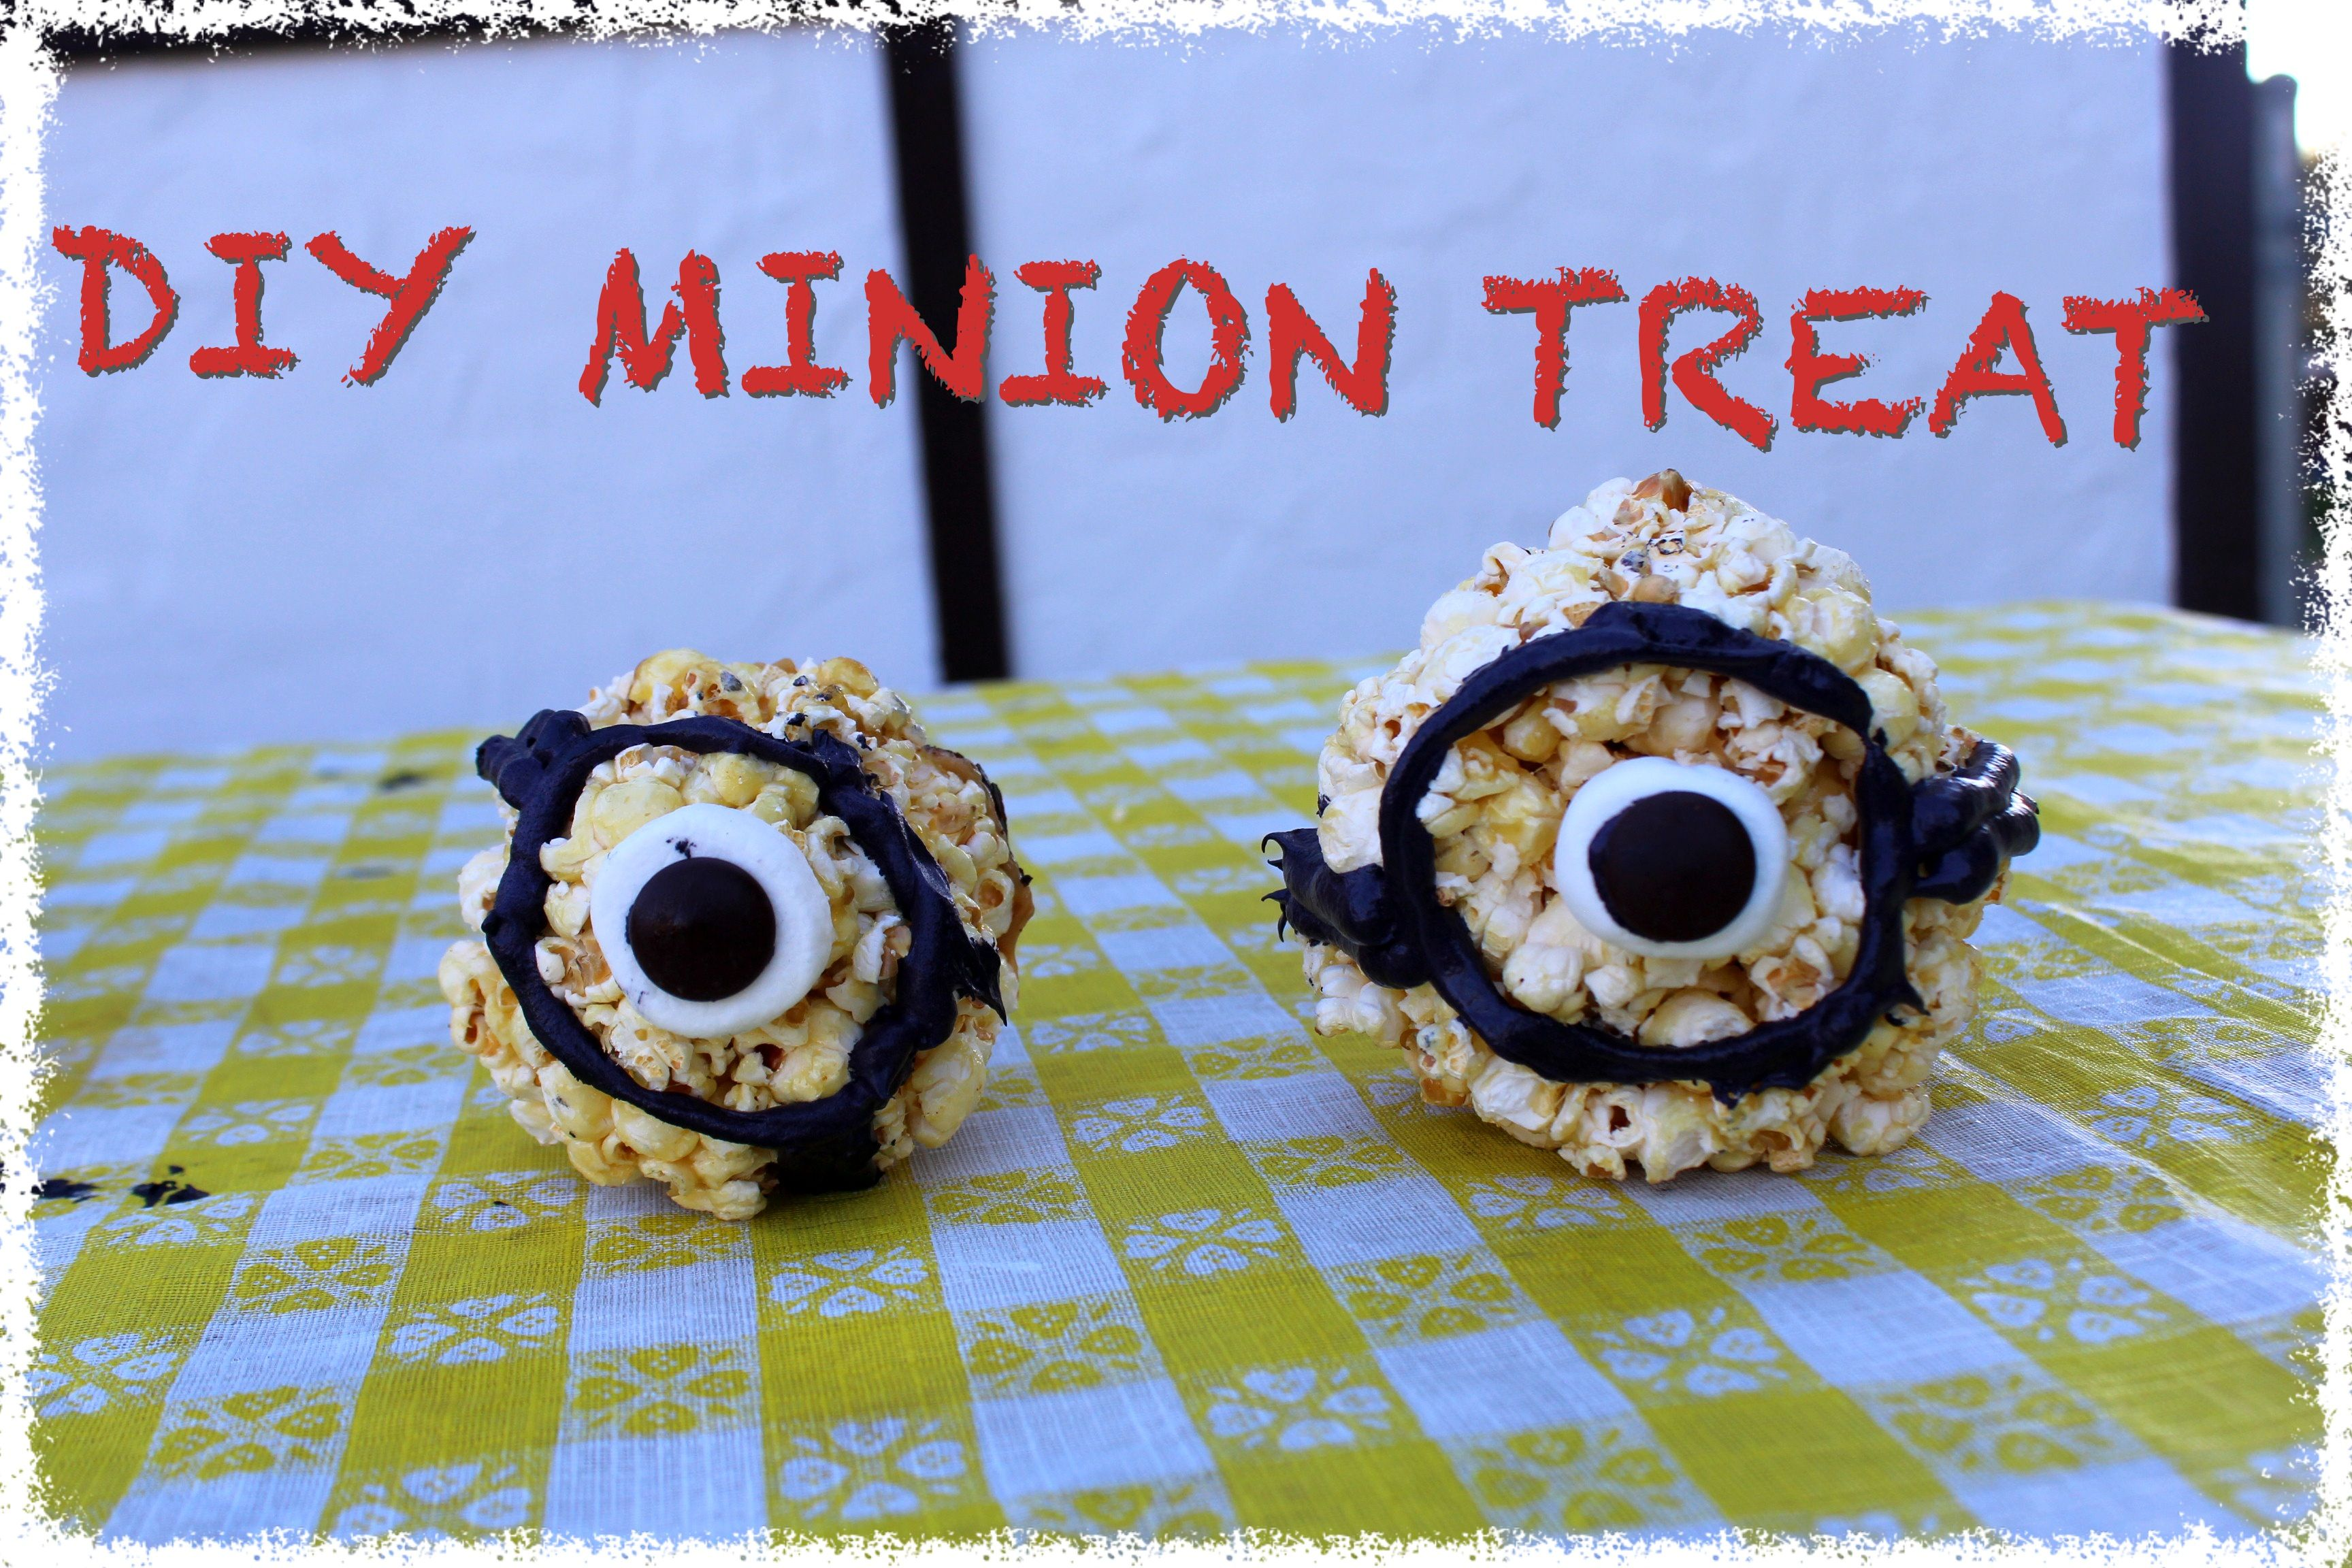 Fun Snack idea for your kids who love minions or love diy minion projects